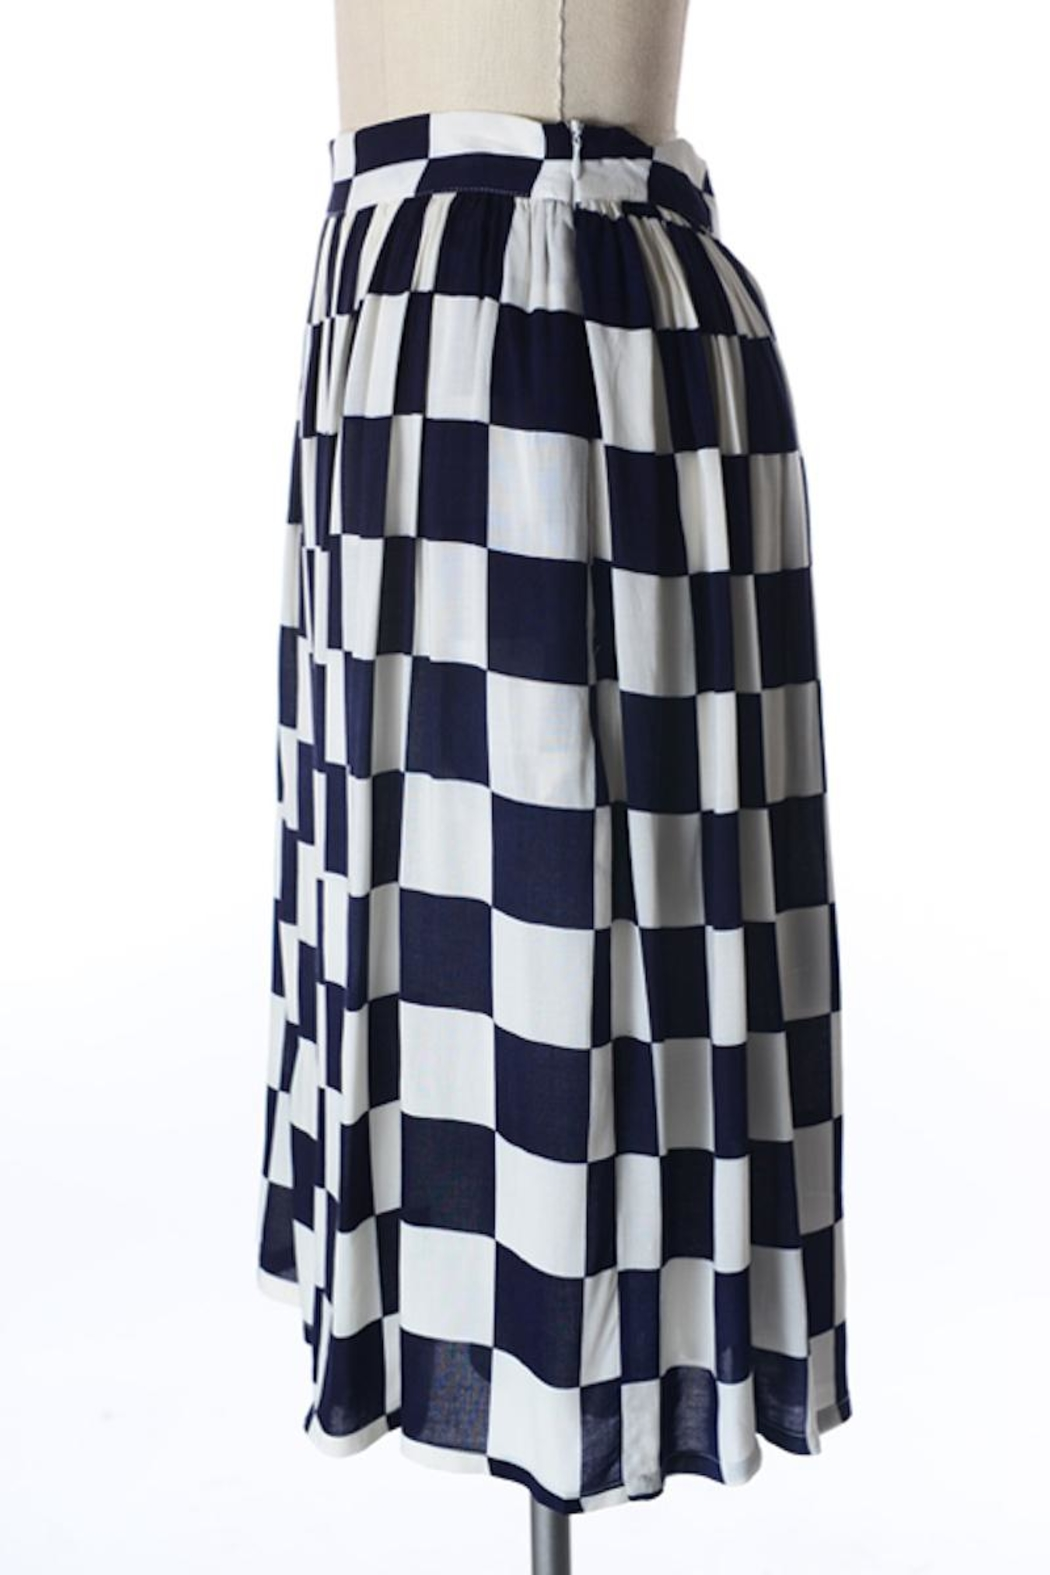 Comme Toi Navy Checkered Skirt - Front Full Image